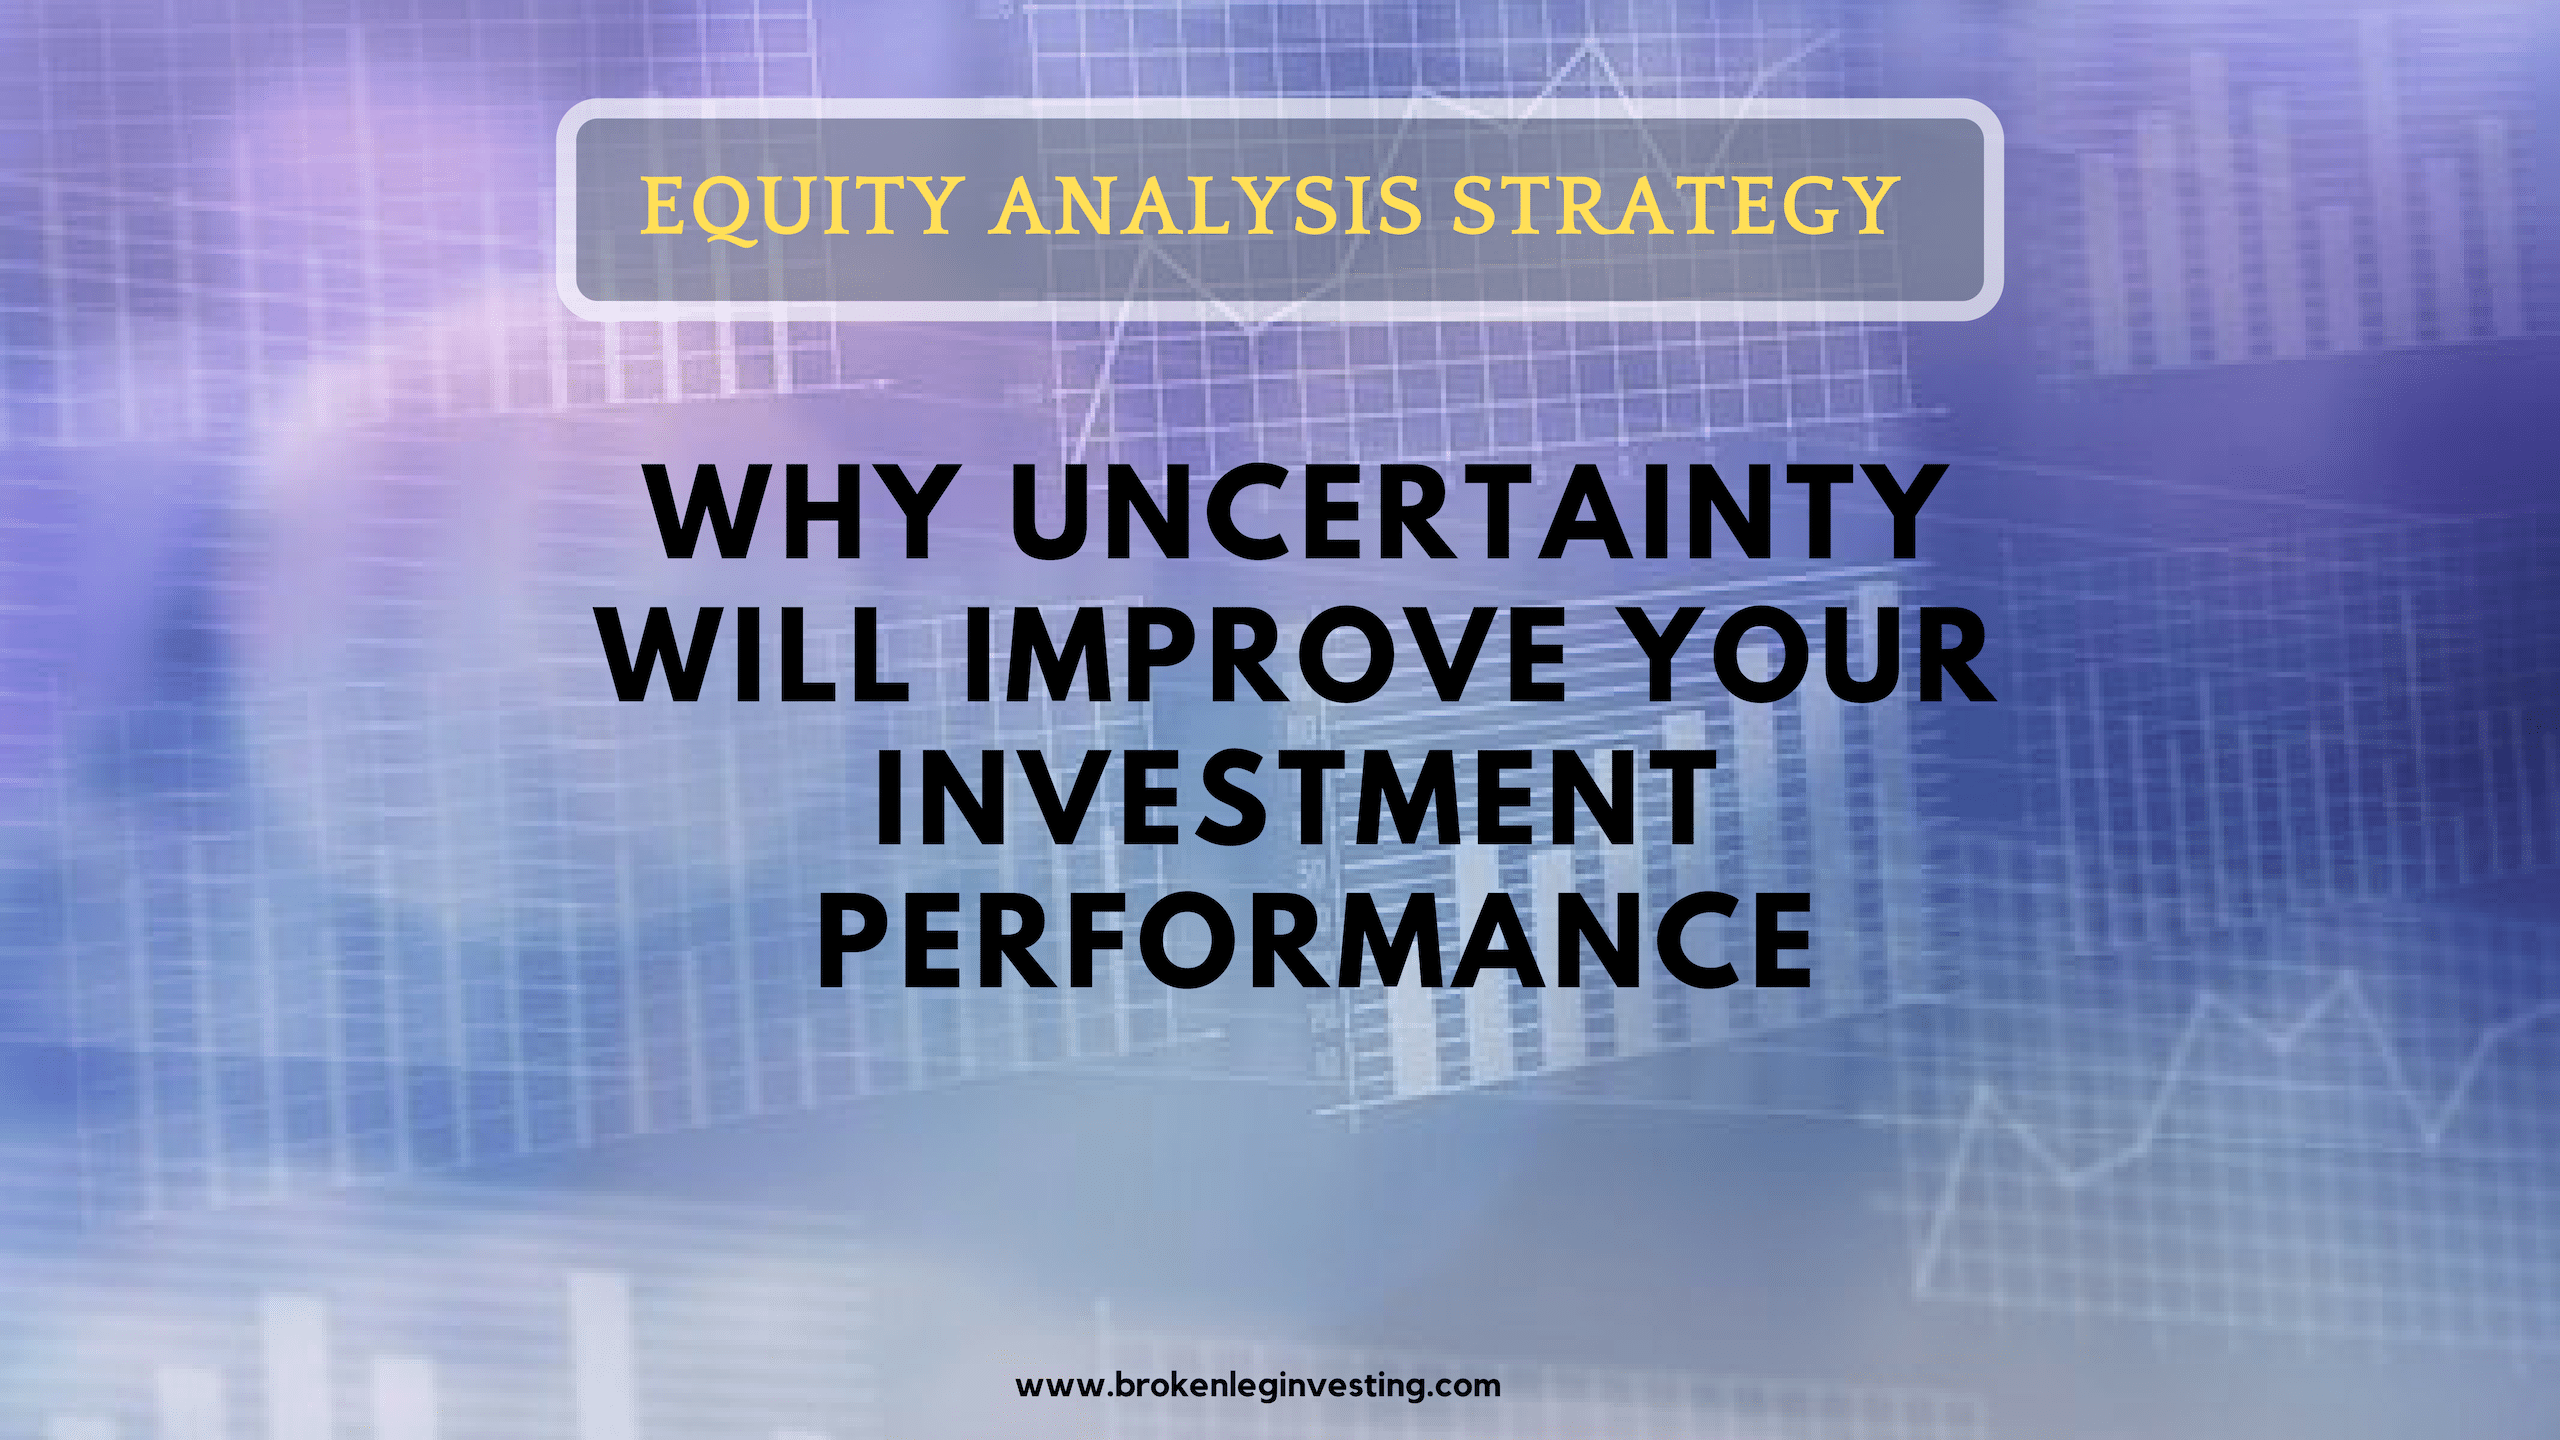 Equity Analysis Strategy: Uncertainty Improves Performance